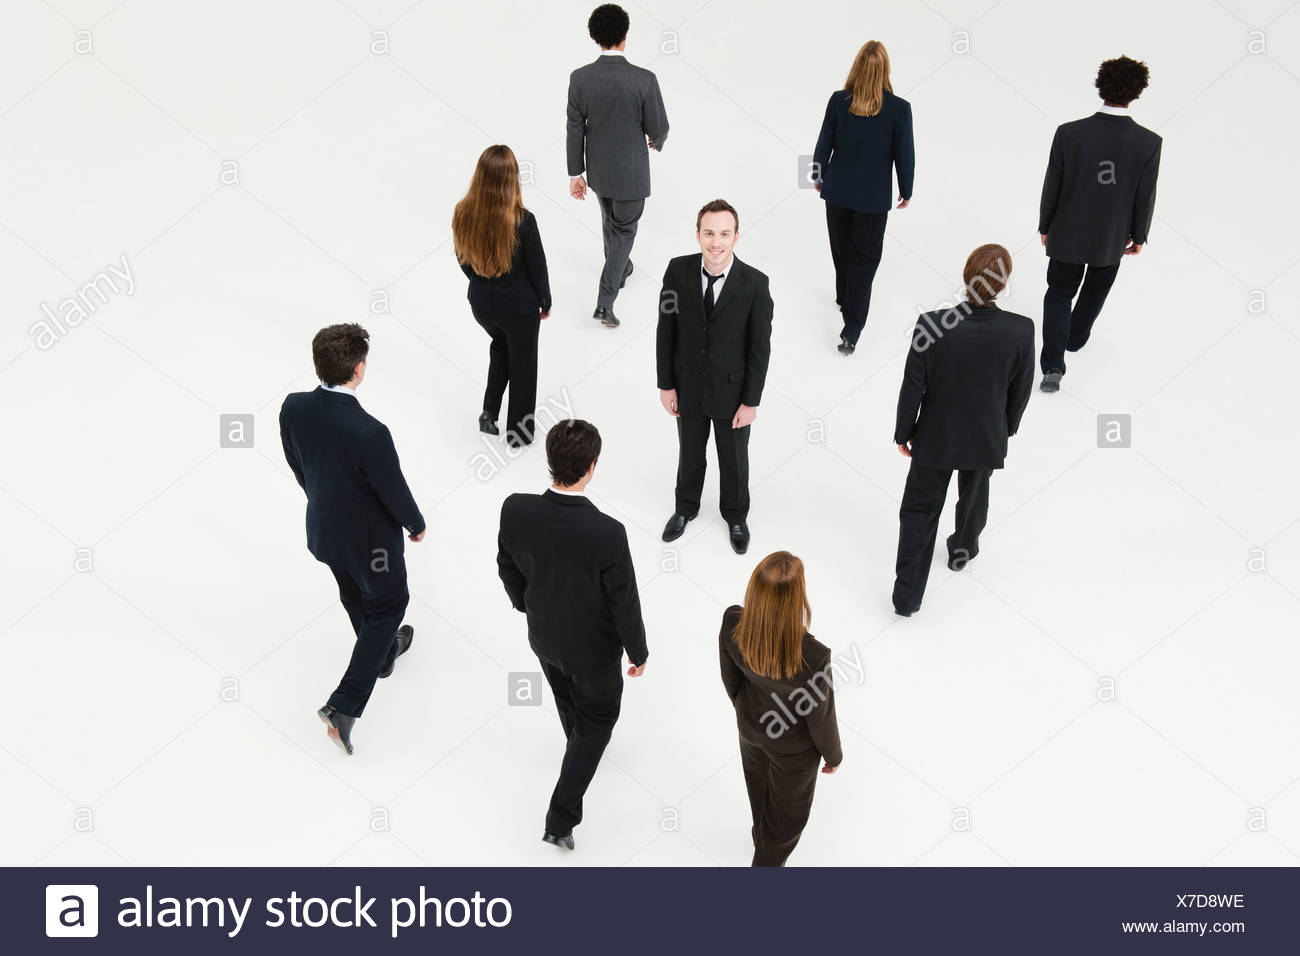 Businessman standing in midst of other anonymously dressed business professionals - Stock Image